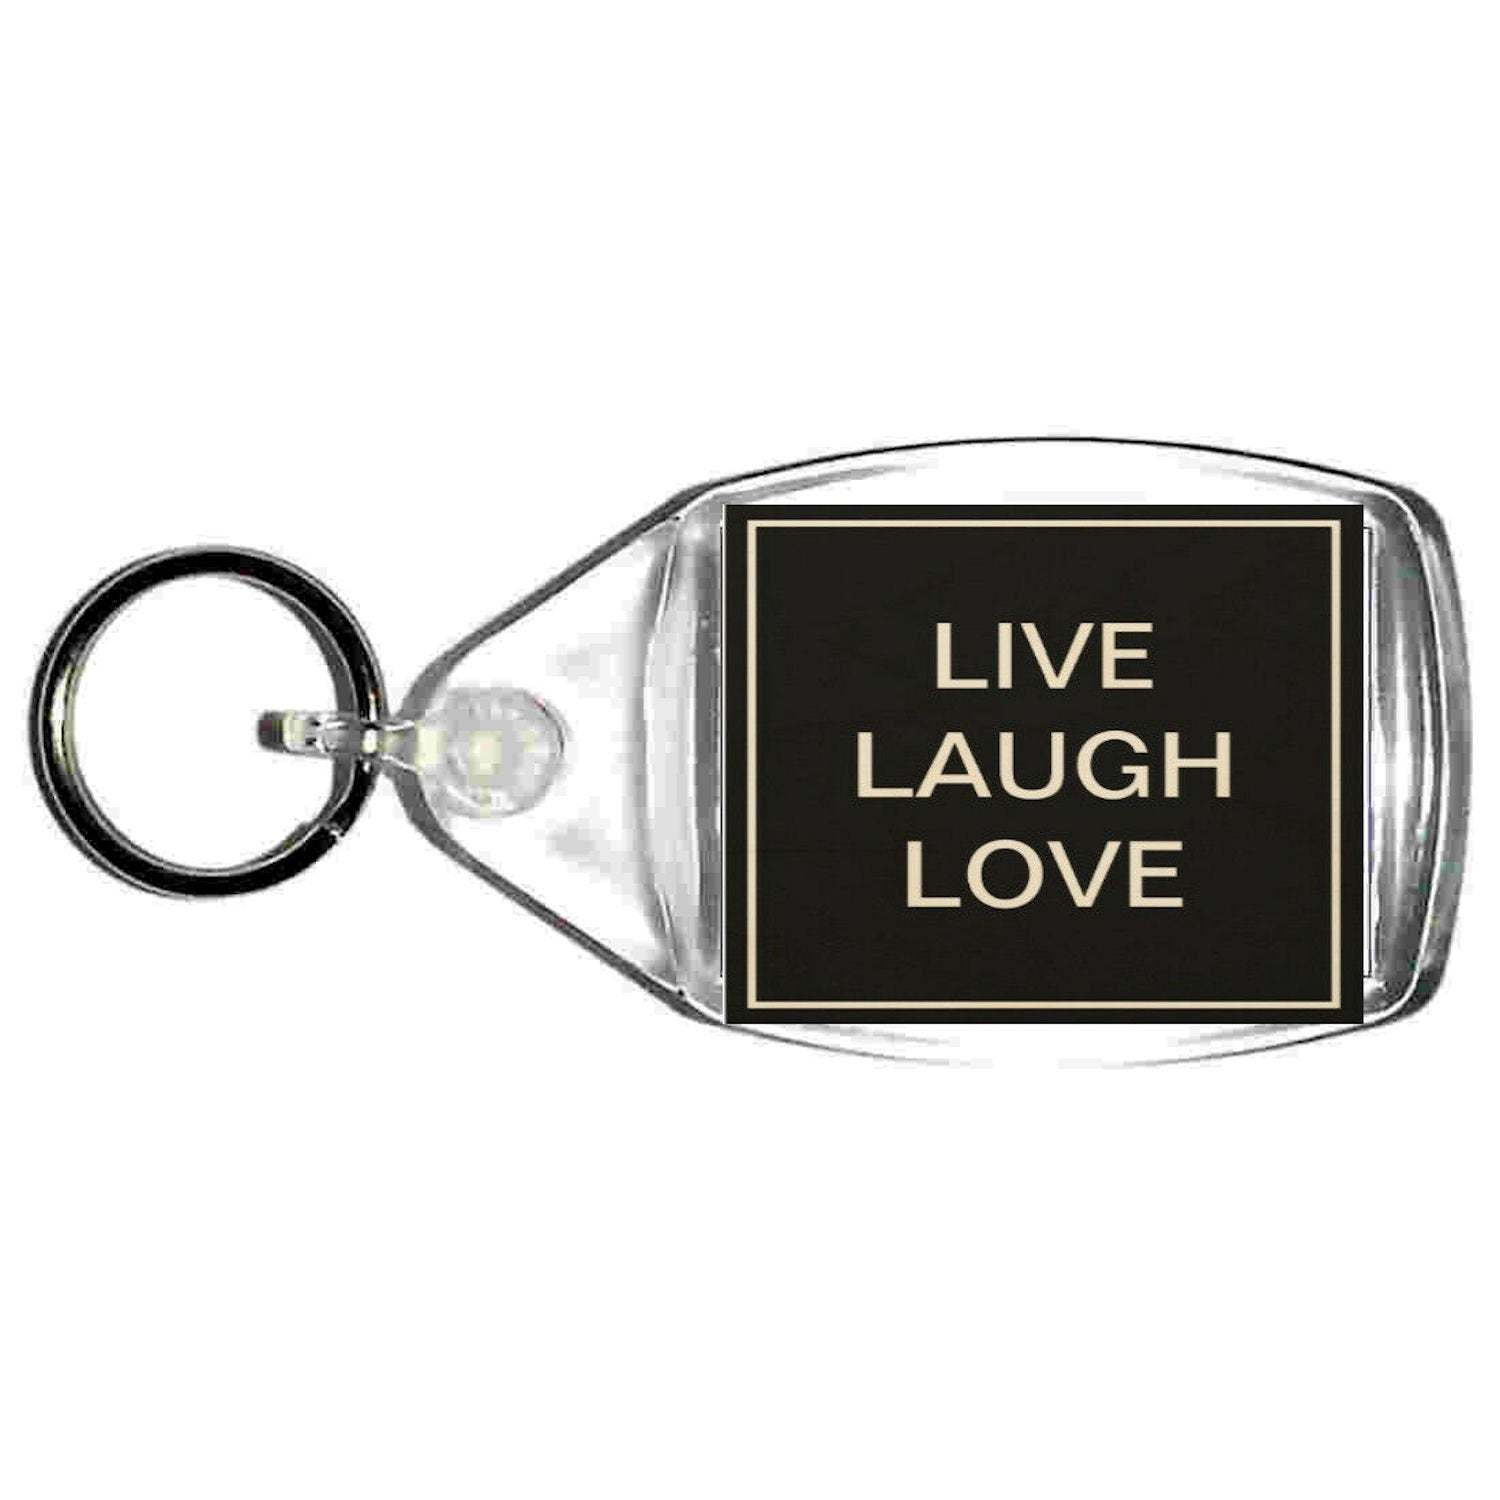 keyring double sided live laugh love design, keychain